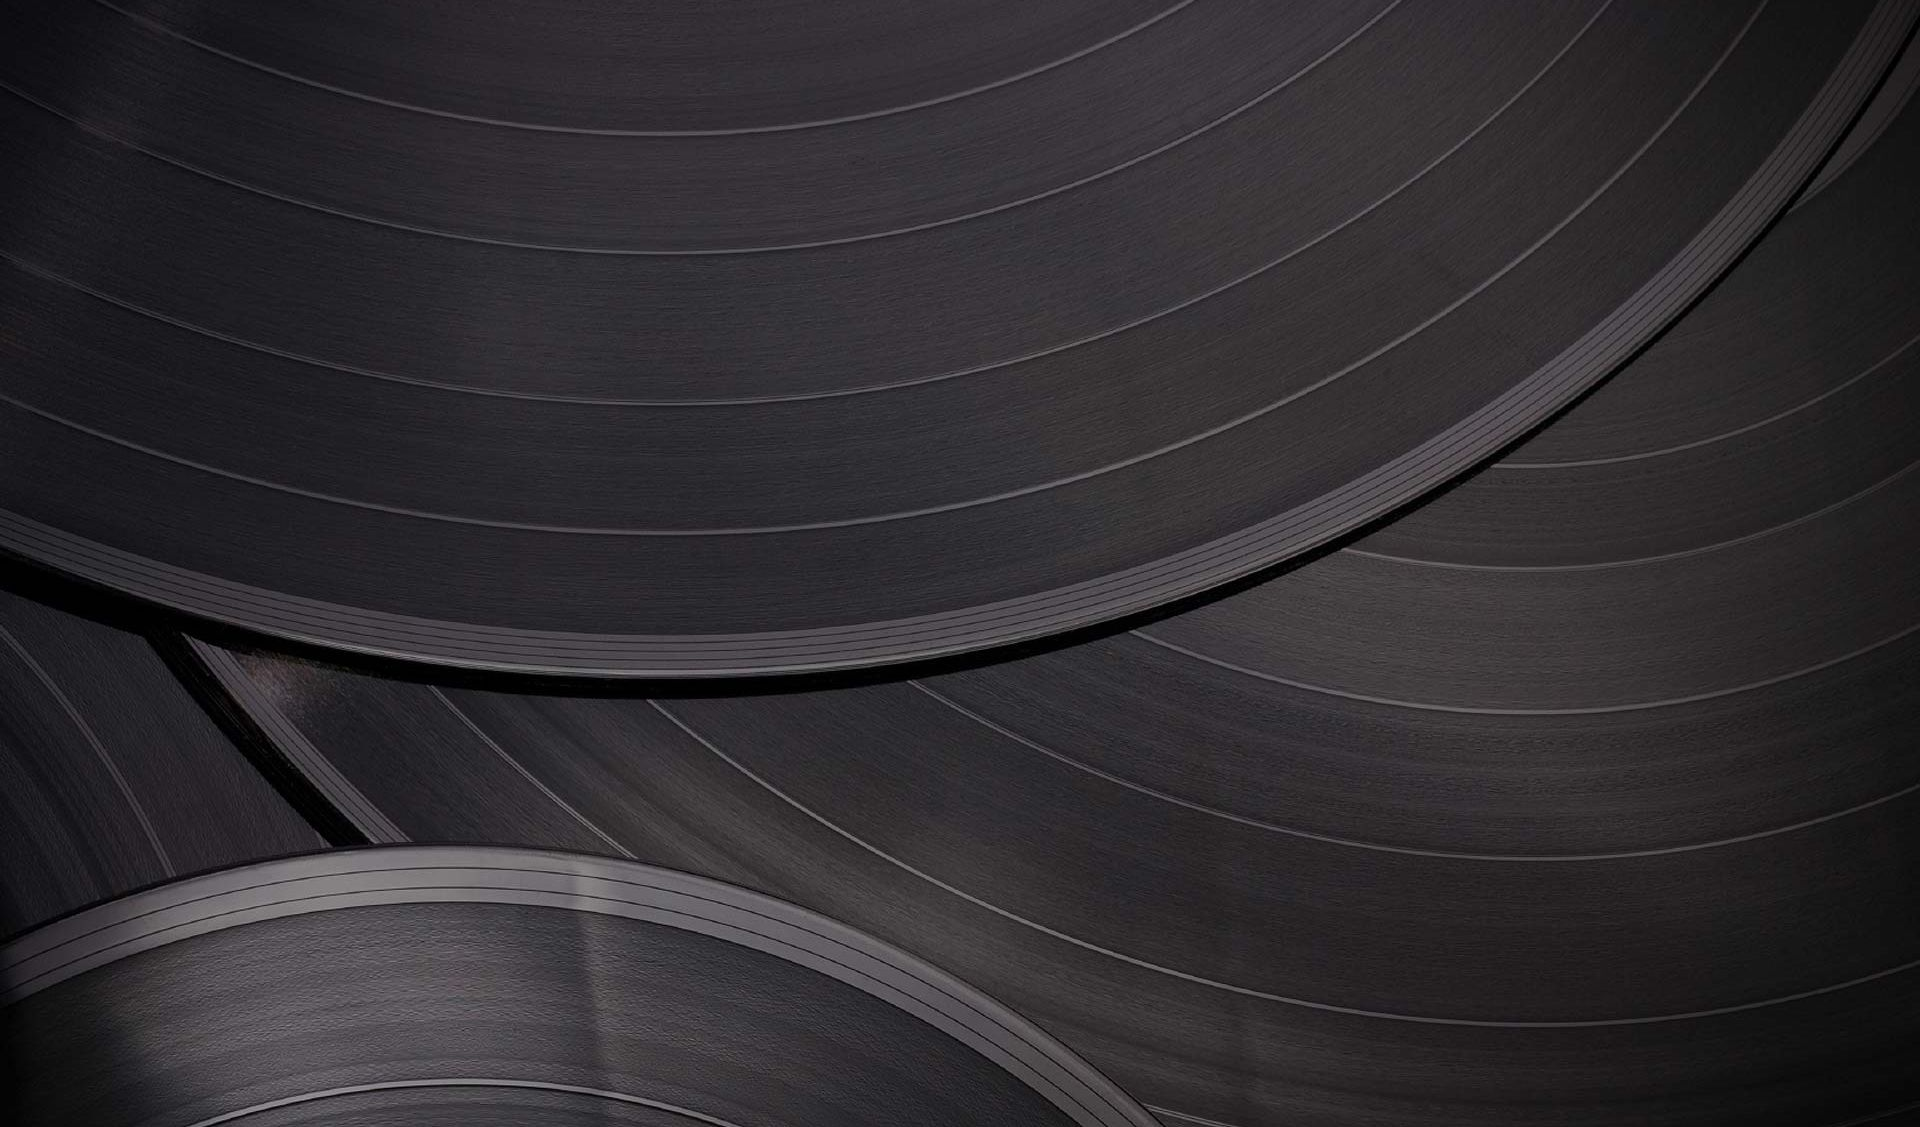 After 30-year hiatus, Sony has resumed production of vinyl records